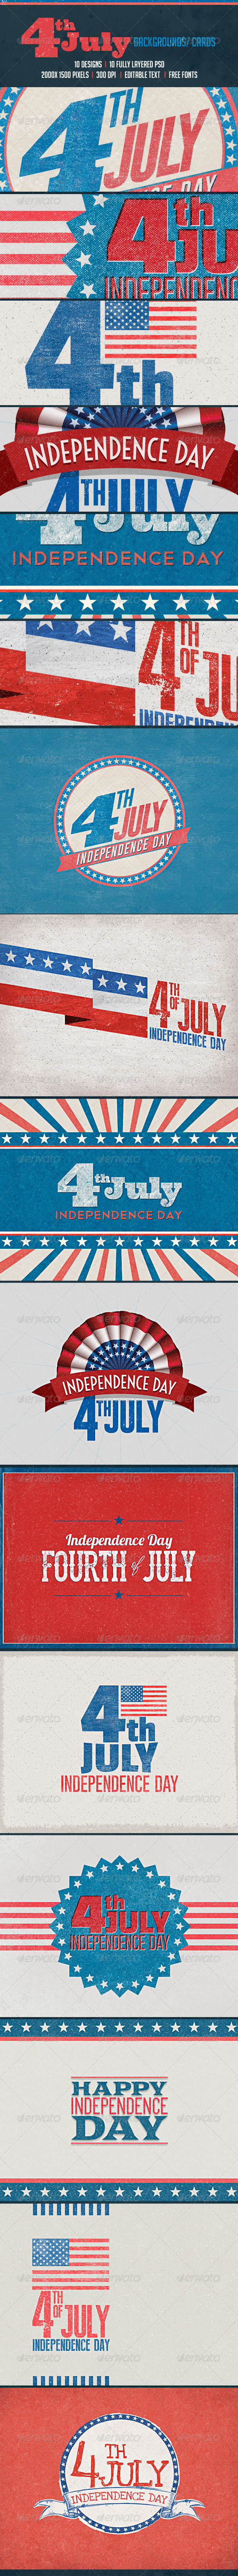 GraphicRiver July 4th Backgrounds Cards 7692977